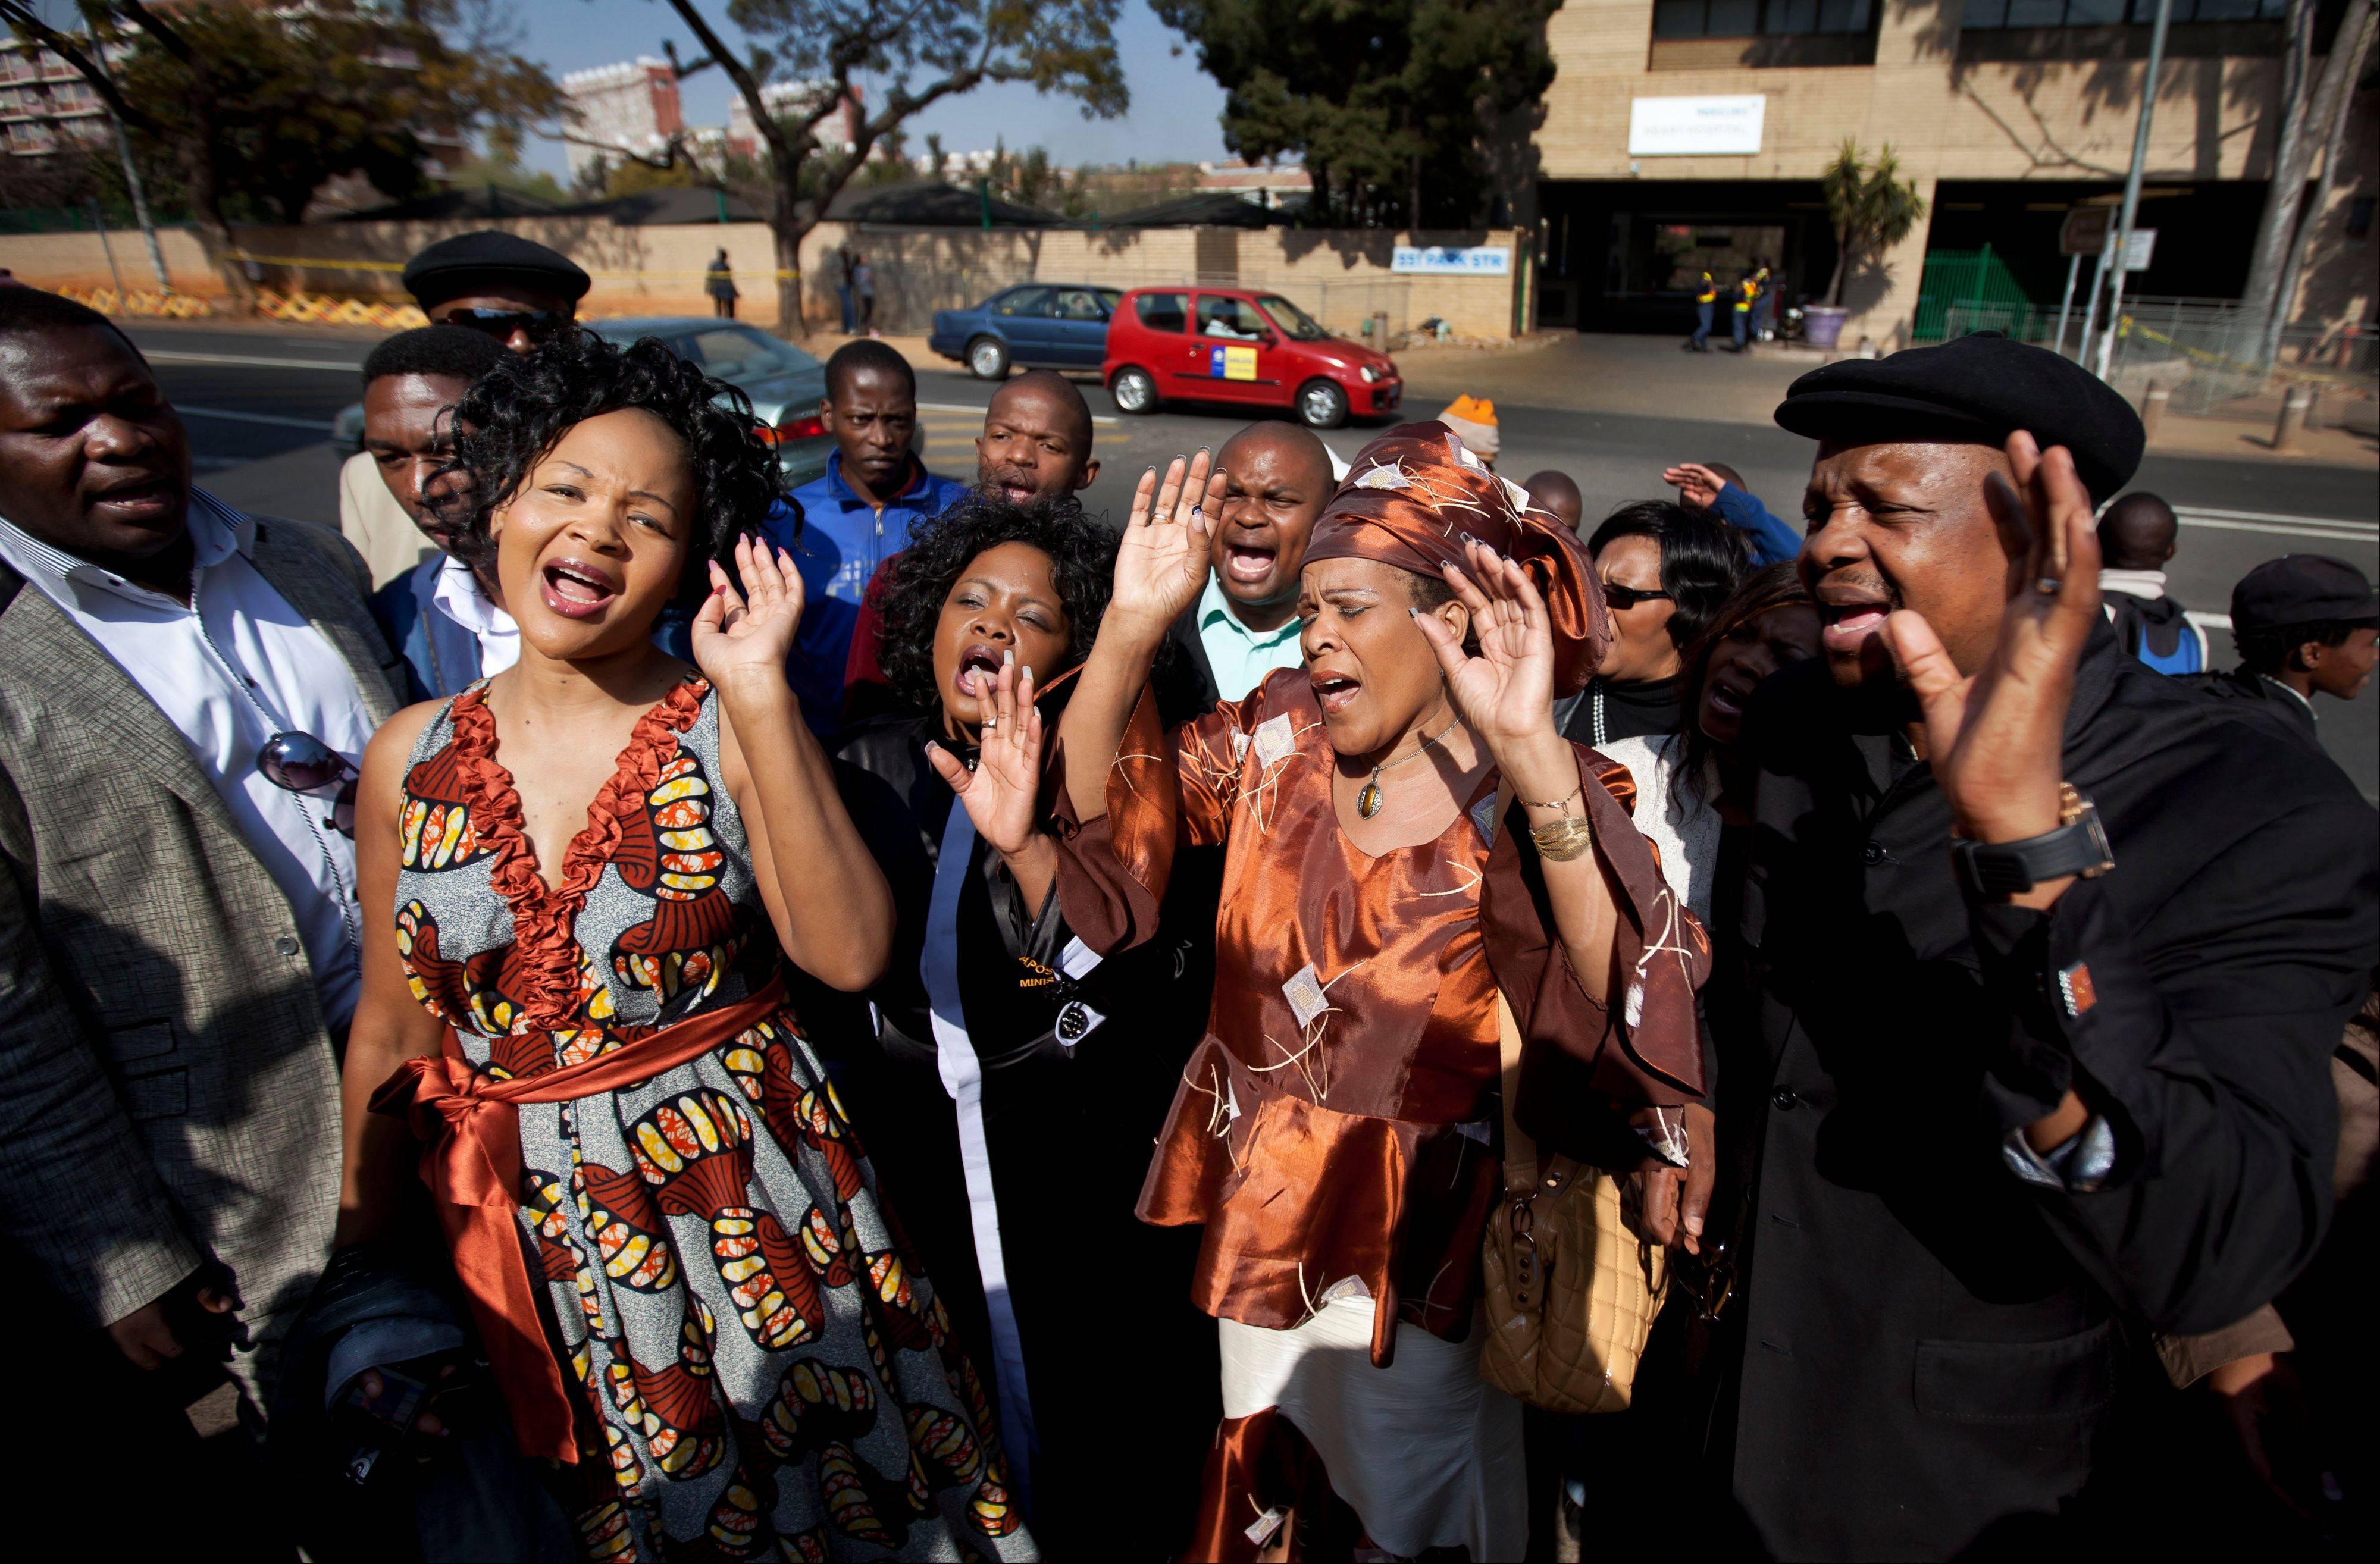 A group of gospel singers pay tribute outside the entrance to the Mediclinic Heart Hospital where former South African President Nelson Mandela is being treated in Pretoria, South Africa. The Nelson Mandela Foundation is hoping that volunteers around the world will donate 67 minutes of their time when South Africa's former president turns 95 next week.